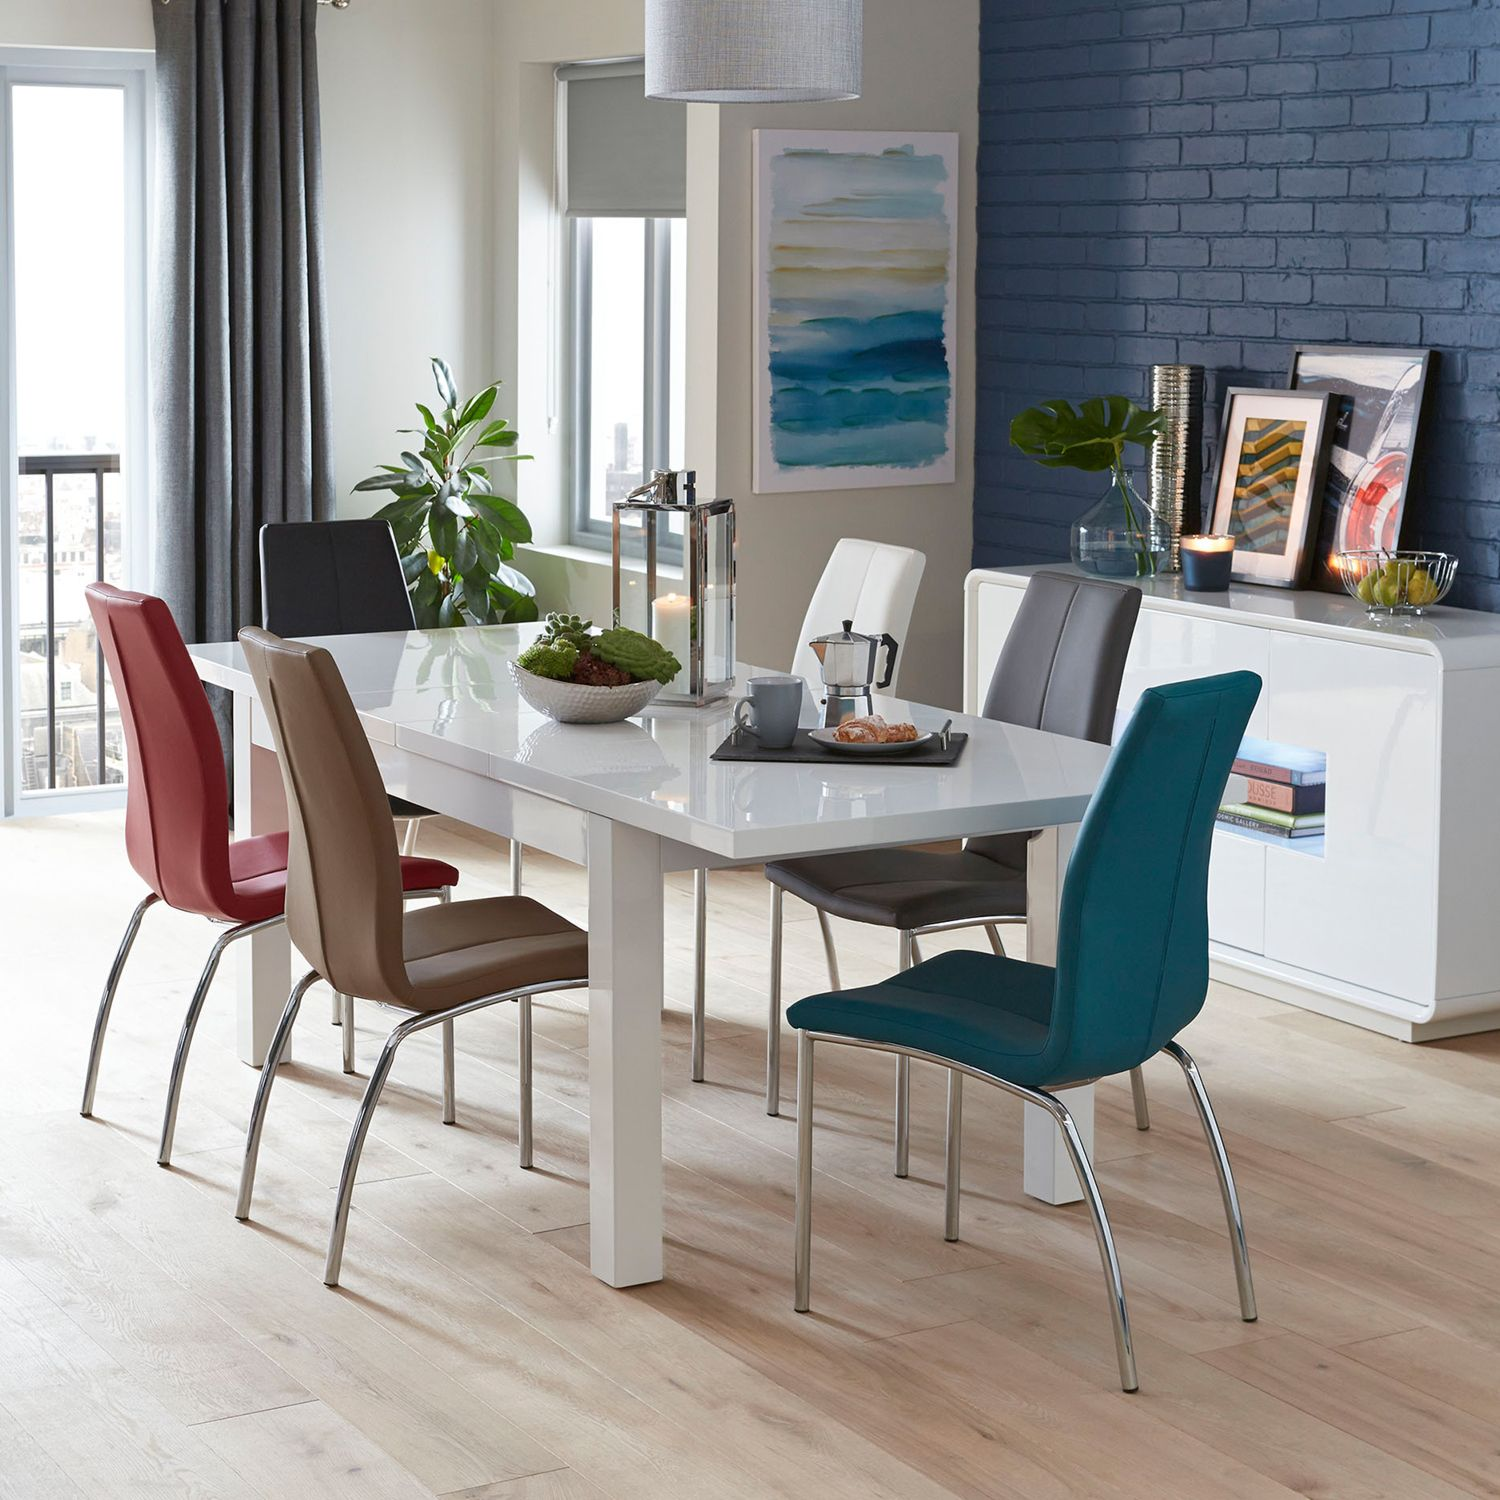 Adela Extending Dining Table White Dining Chairs Home Decor Extendable Dining Table